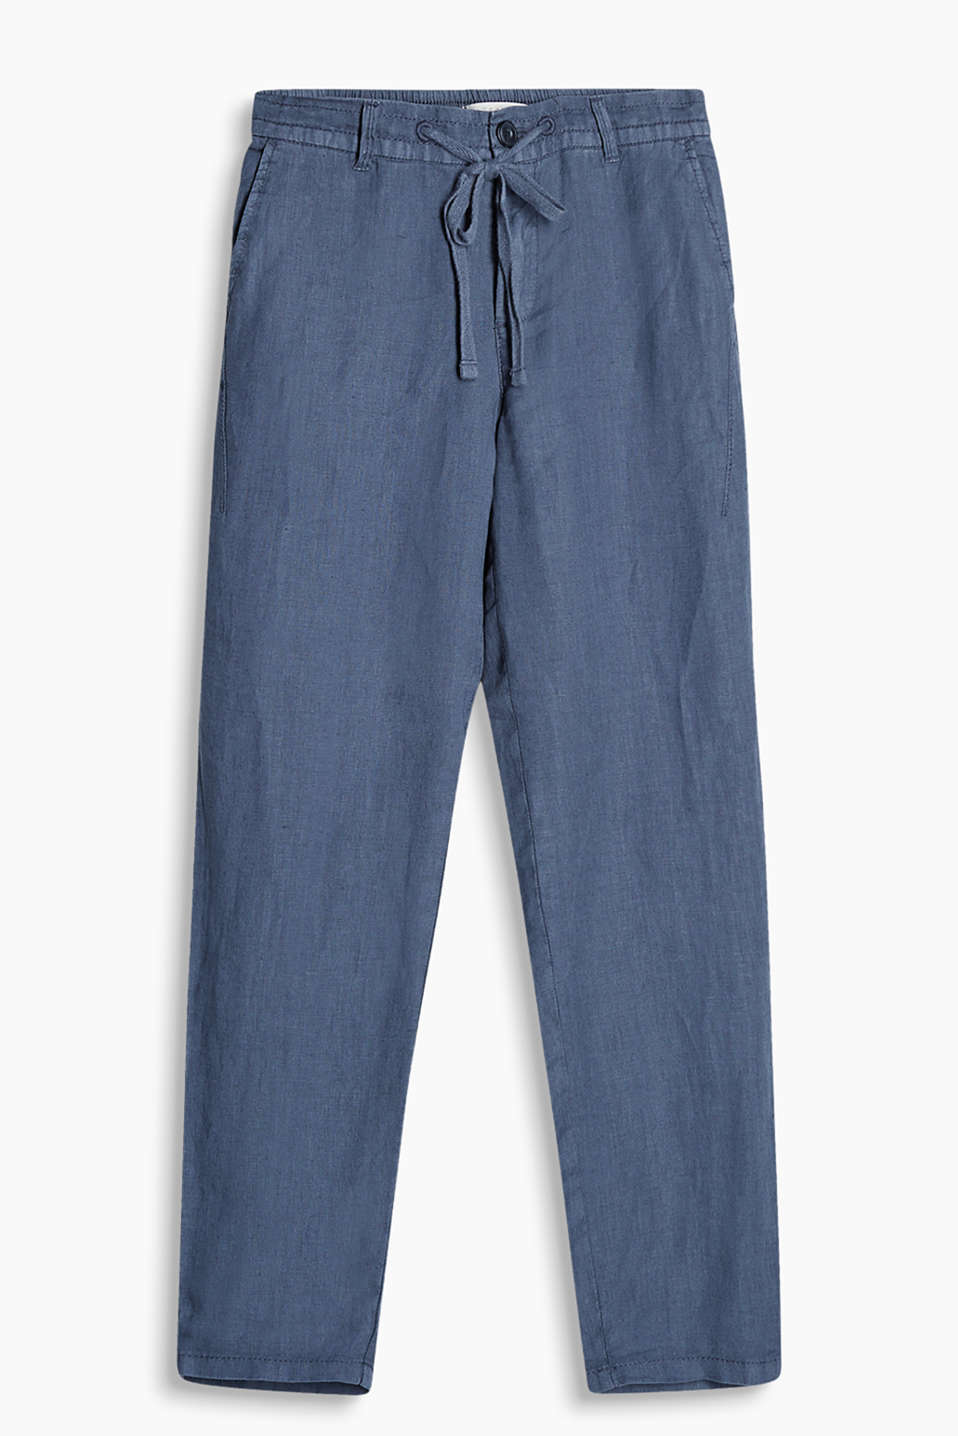 Relaxed trousers made of exceptionally high-quality, acclimatising linen fabric